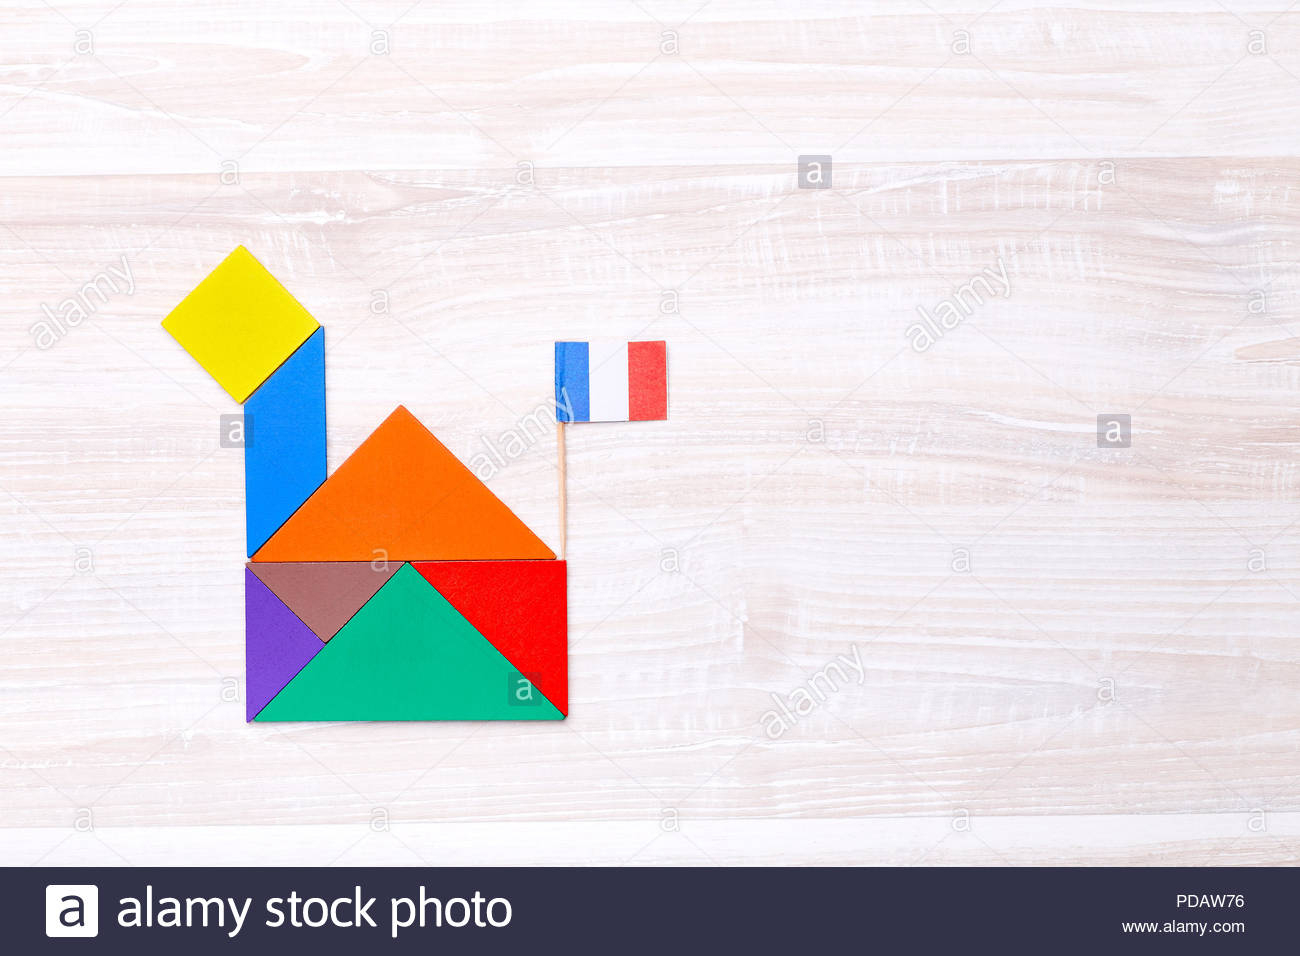 French Compose Stock Photos & French Compose Stock Images destiné Tangram Grande Section